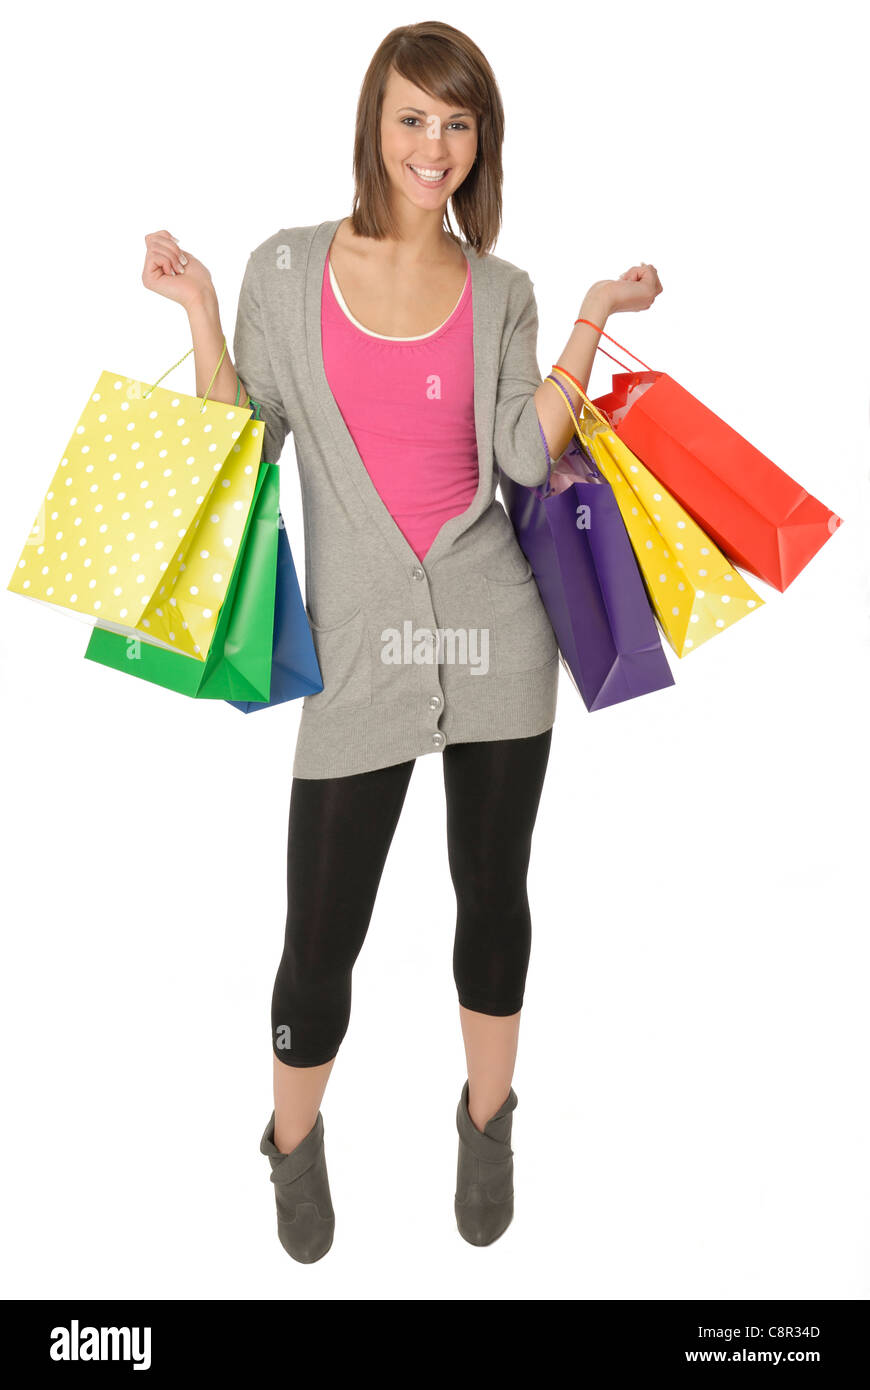 Pretty Young Woman With Colorful Shopping Bags - Stock Image